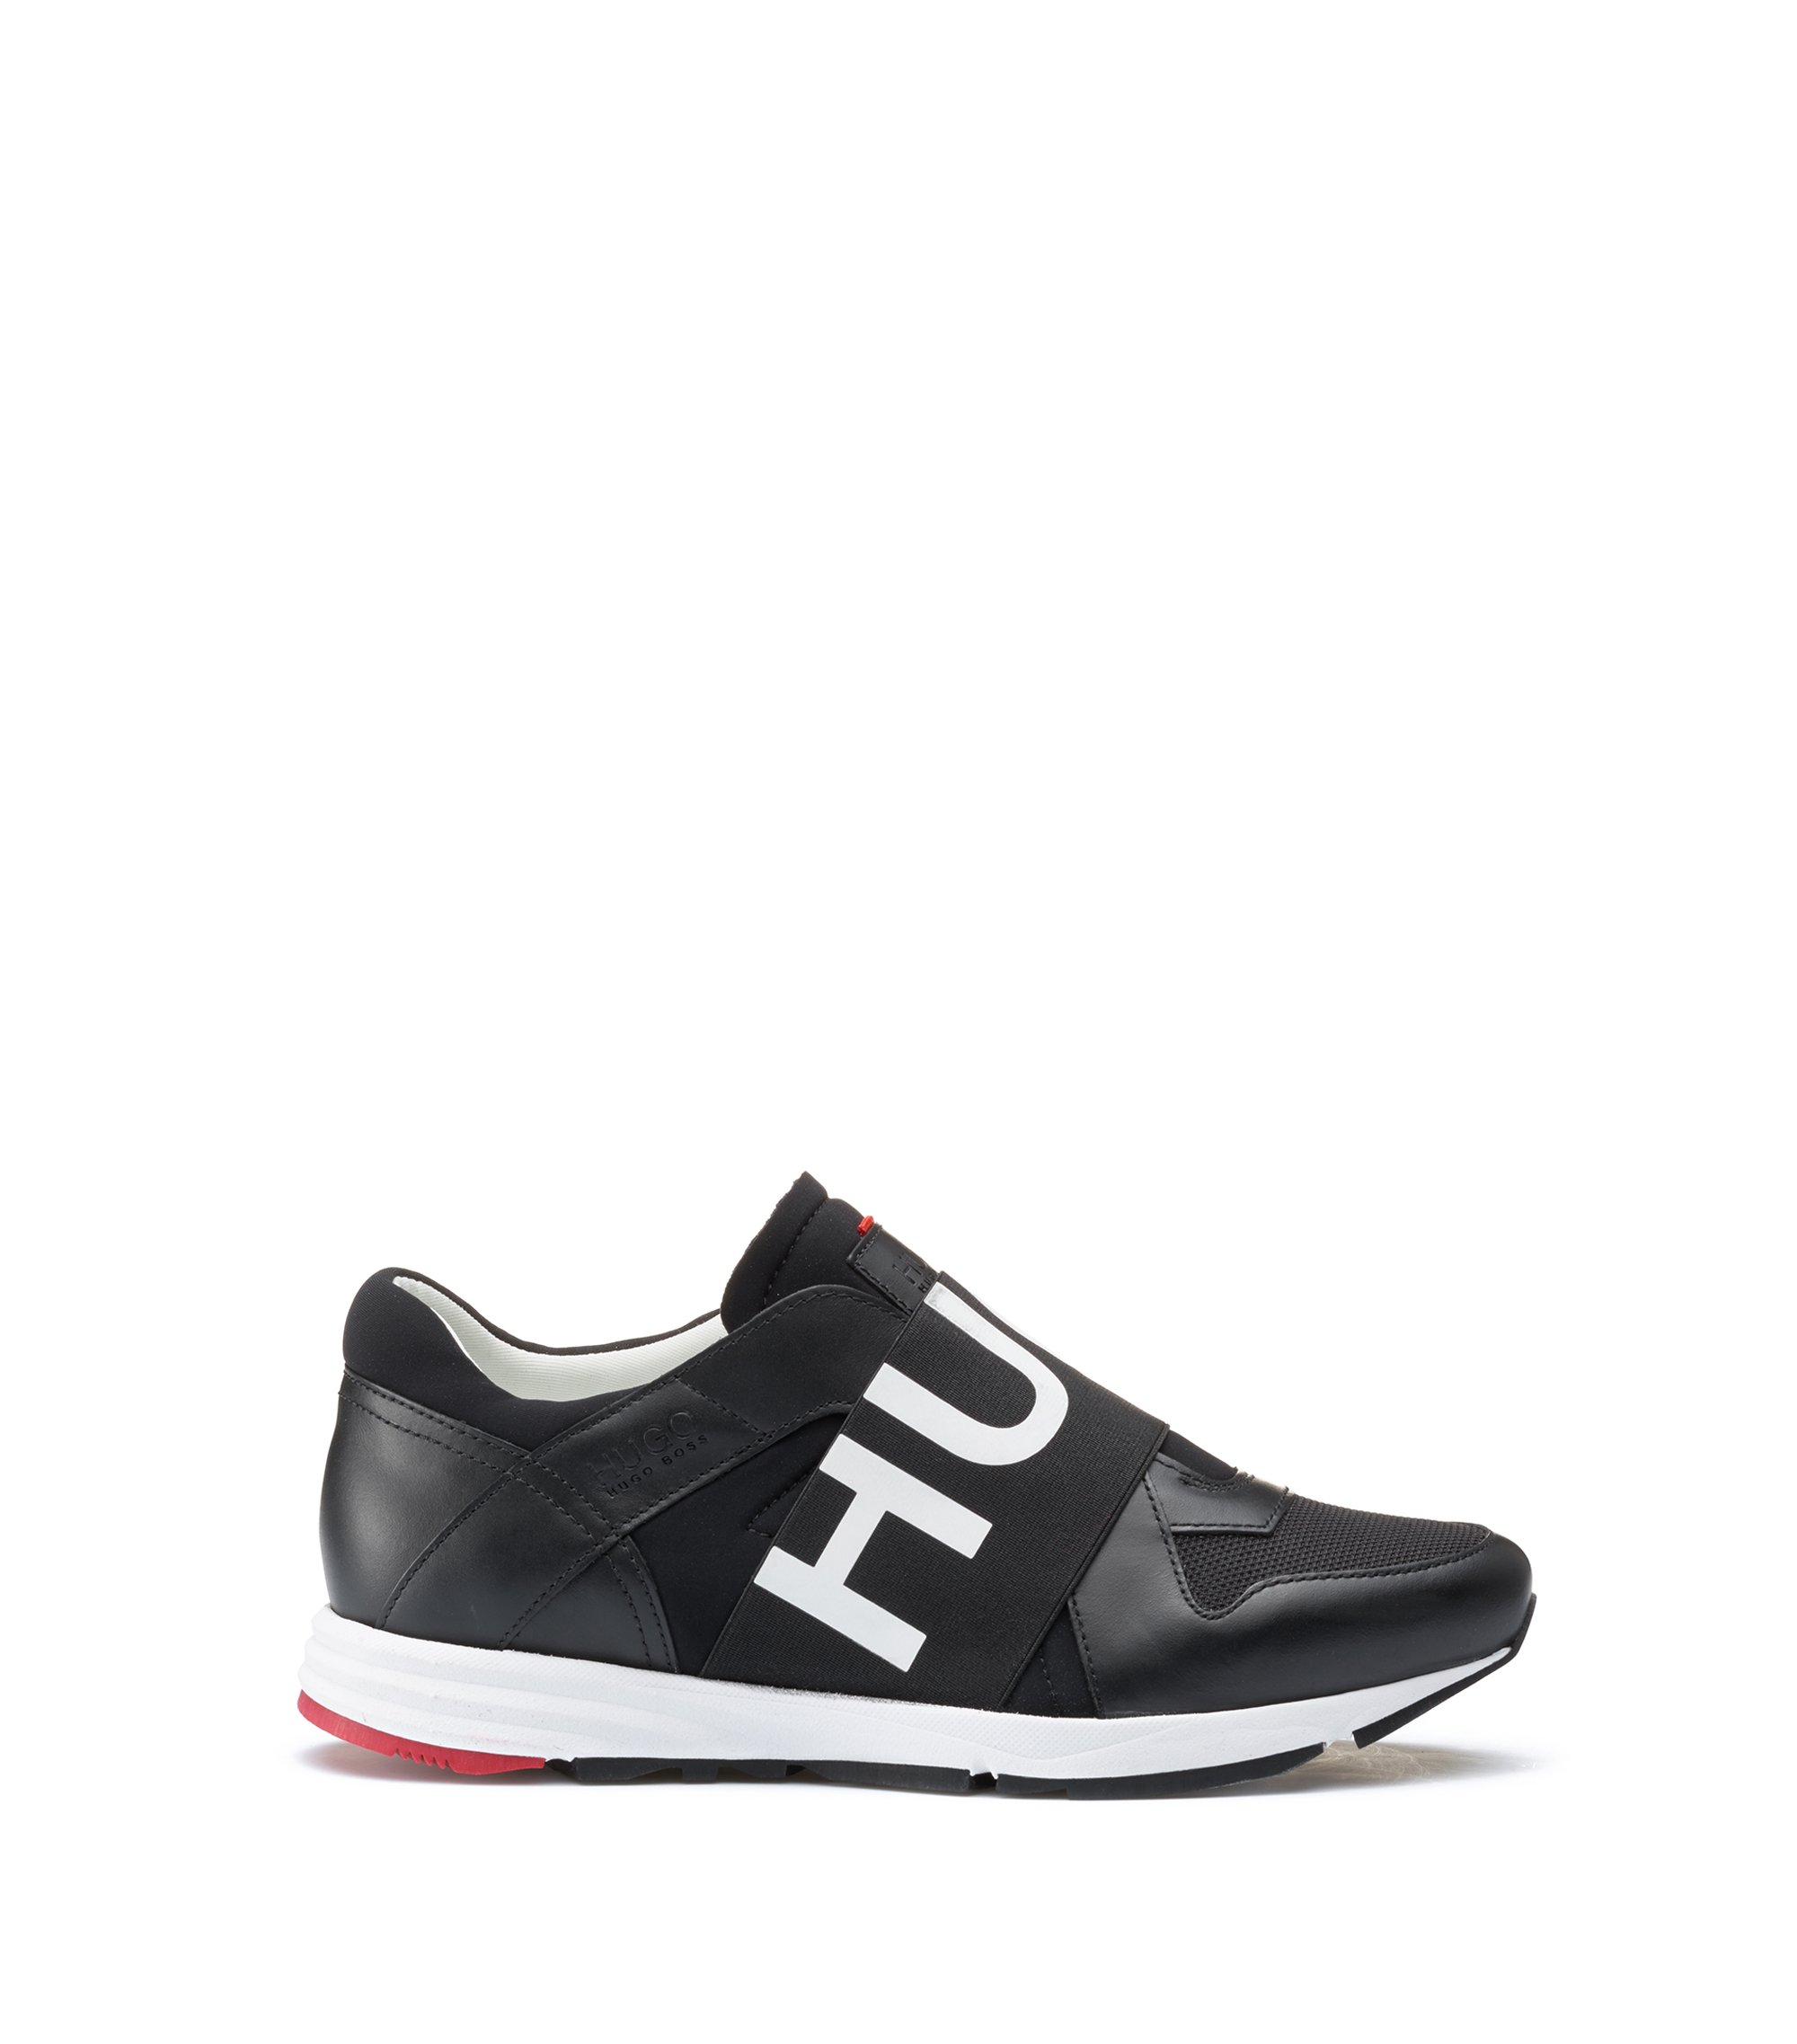 Sneakers in pelle low-top con fascia con logo, Nero